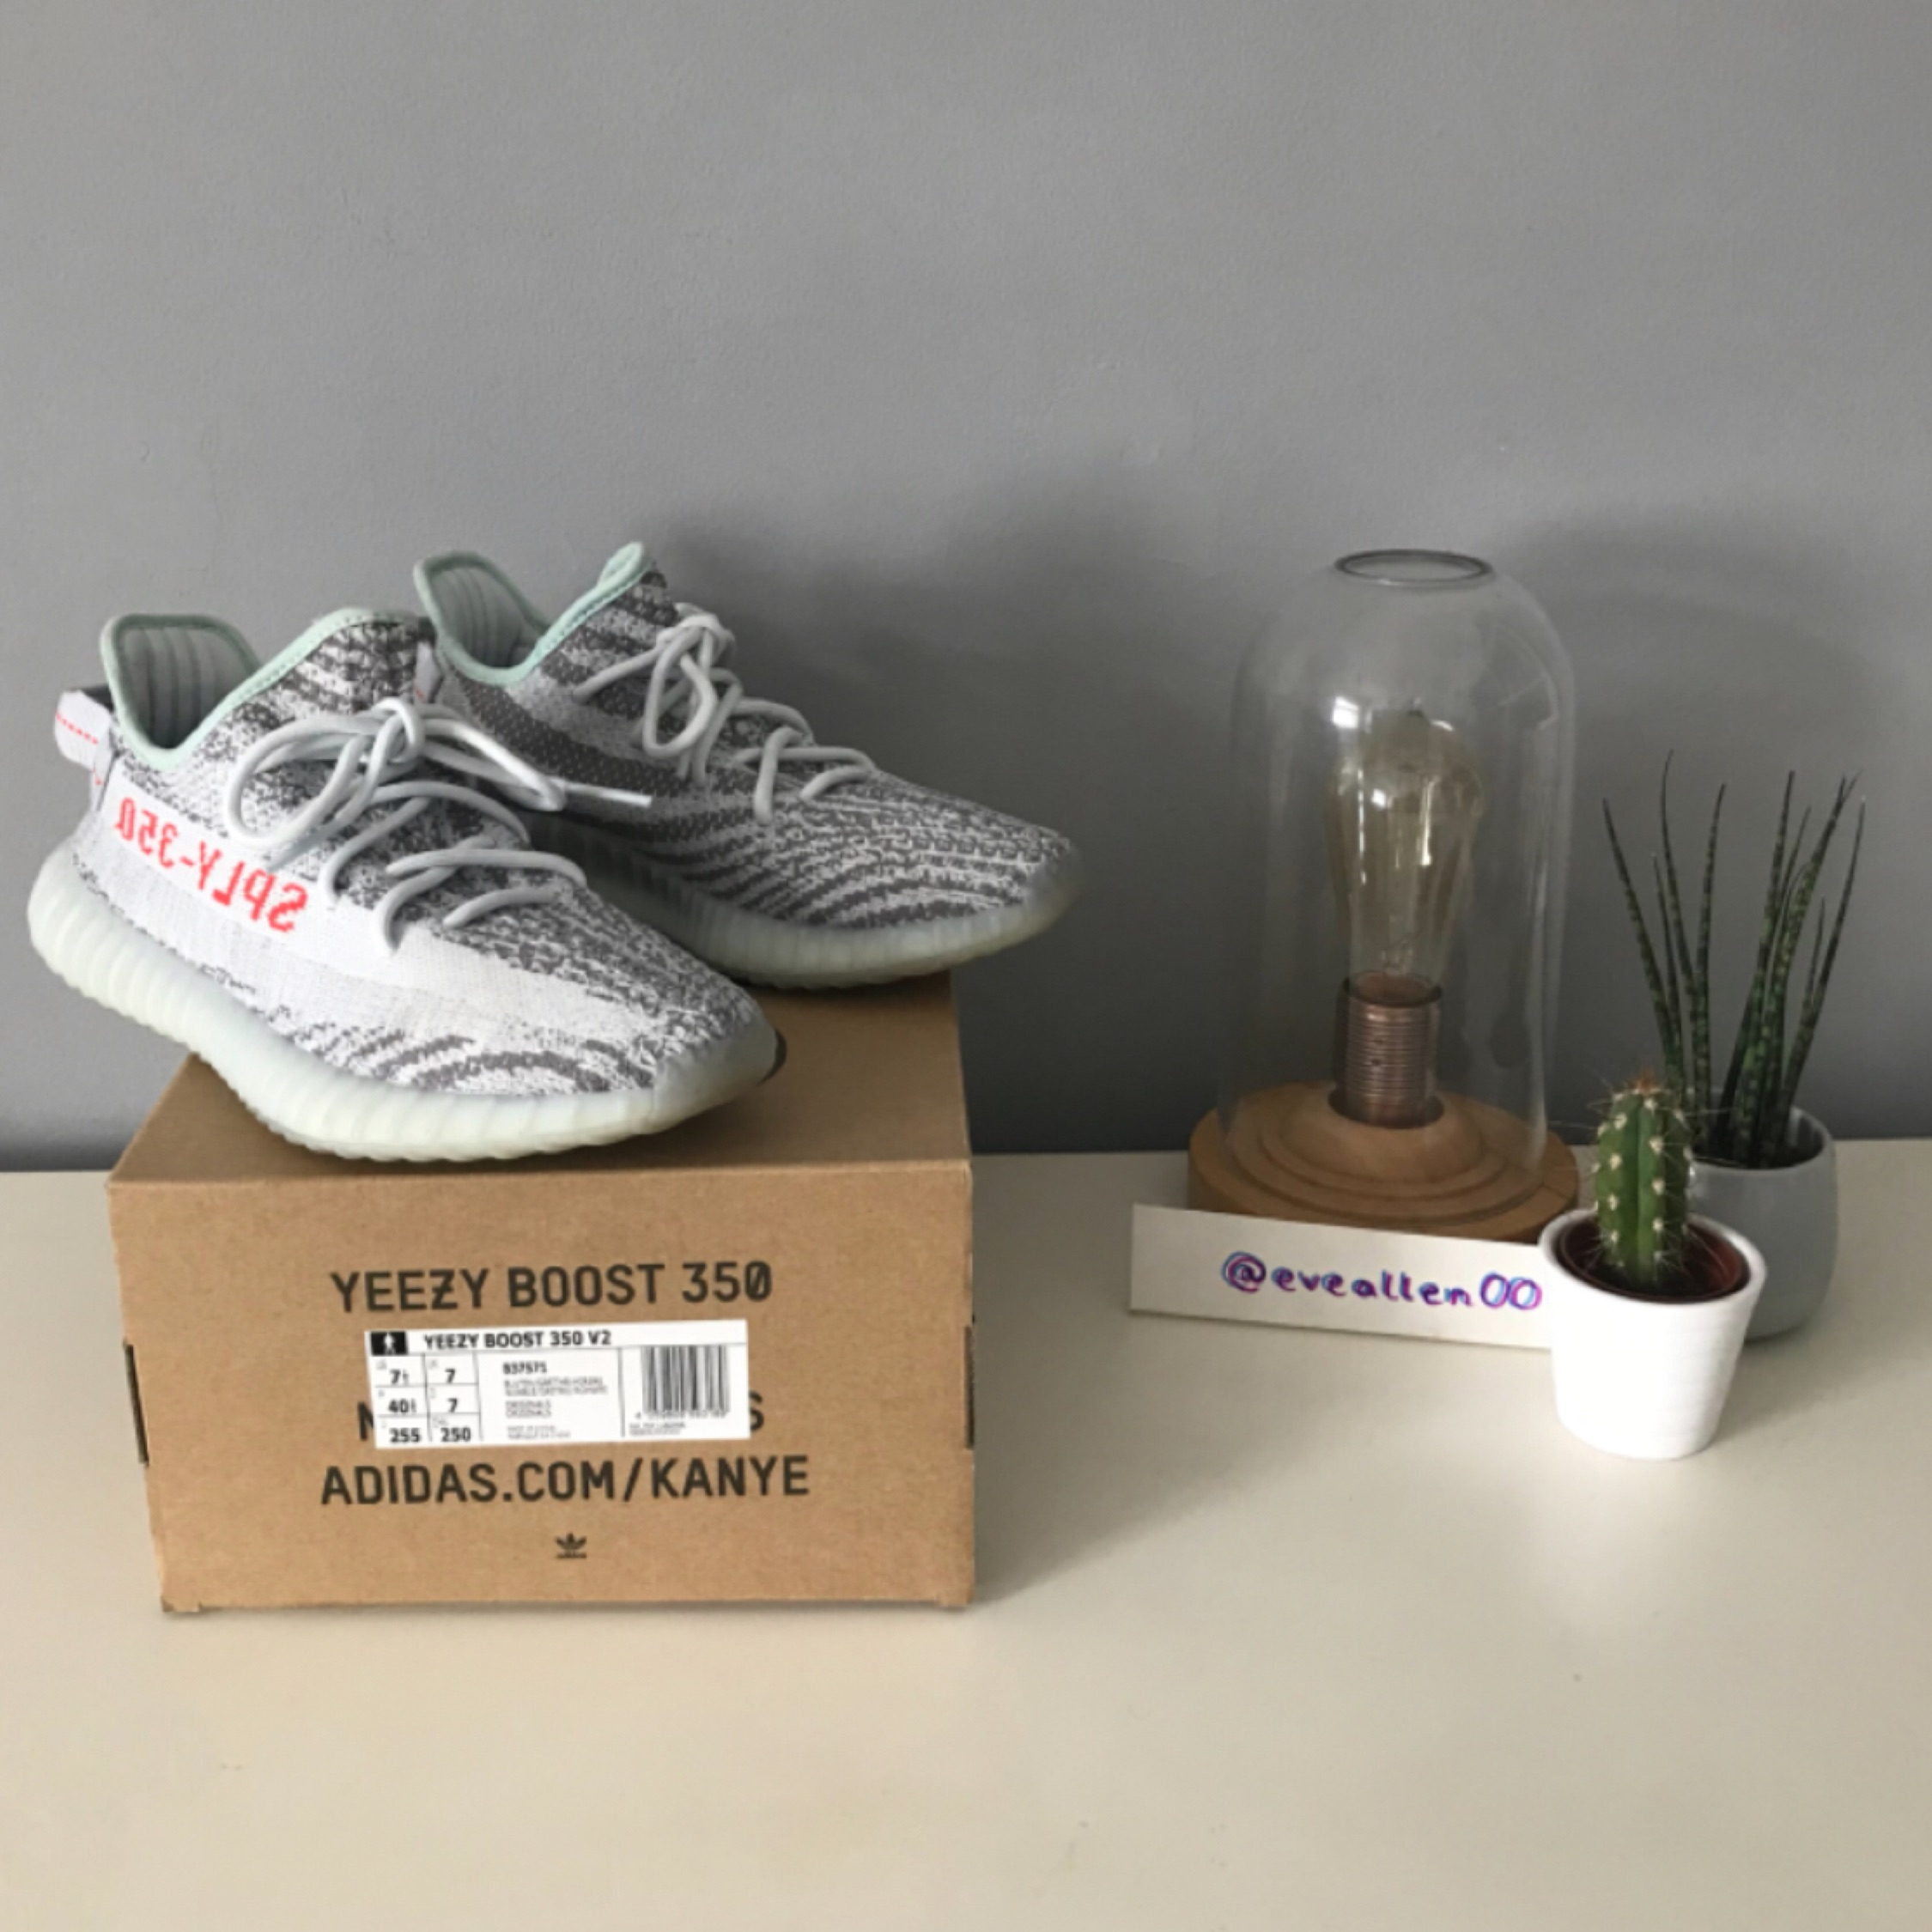 newest collection 8f152 3352e Adidas Yeezy Boost 350 Blue Tint